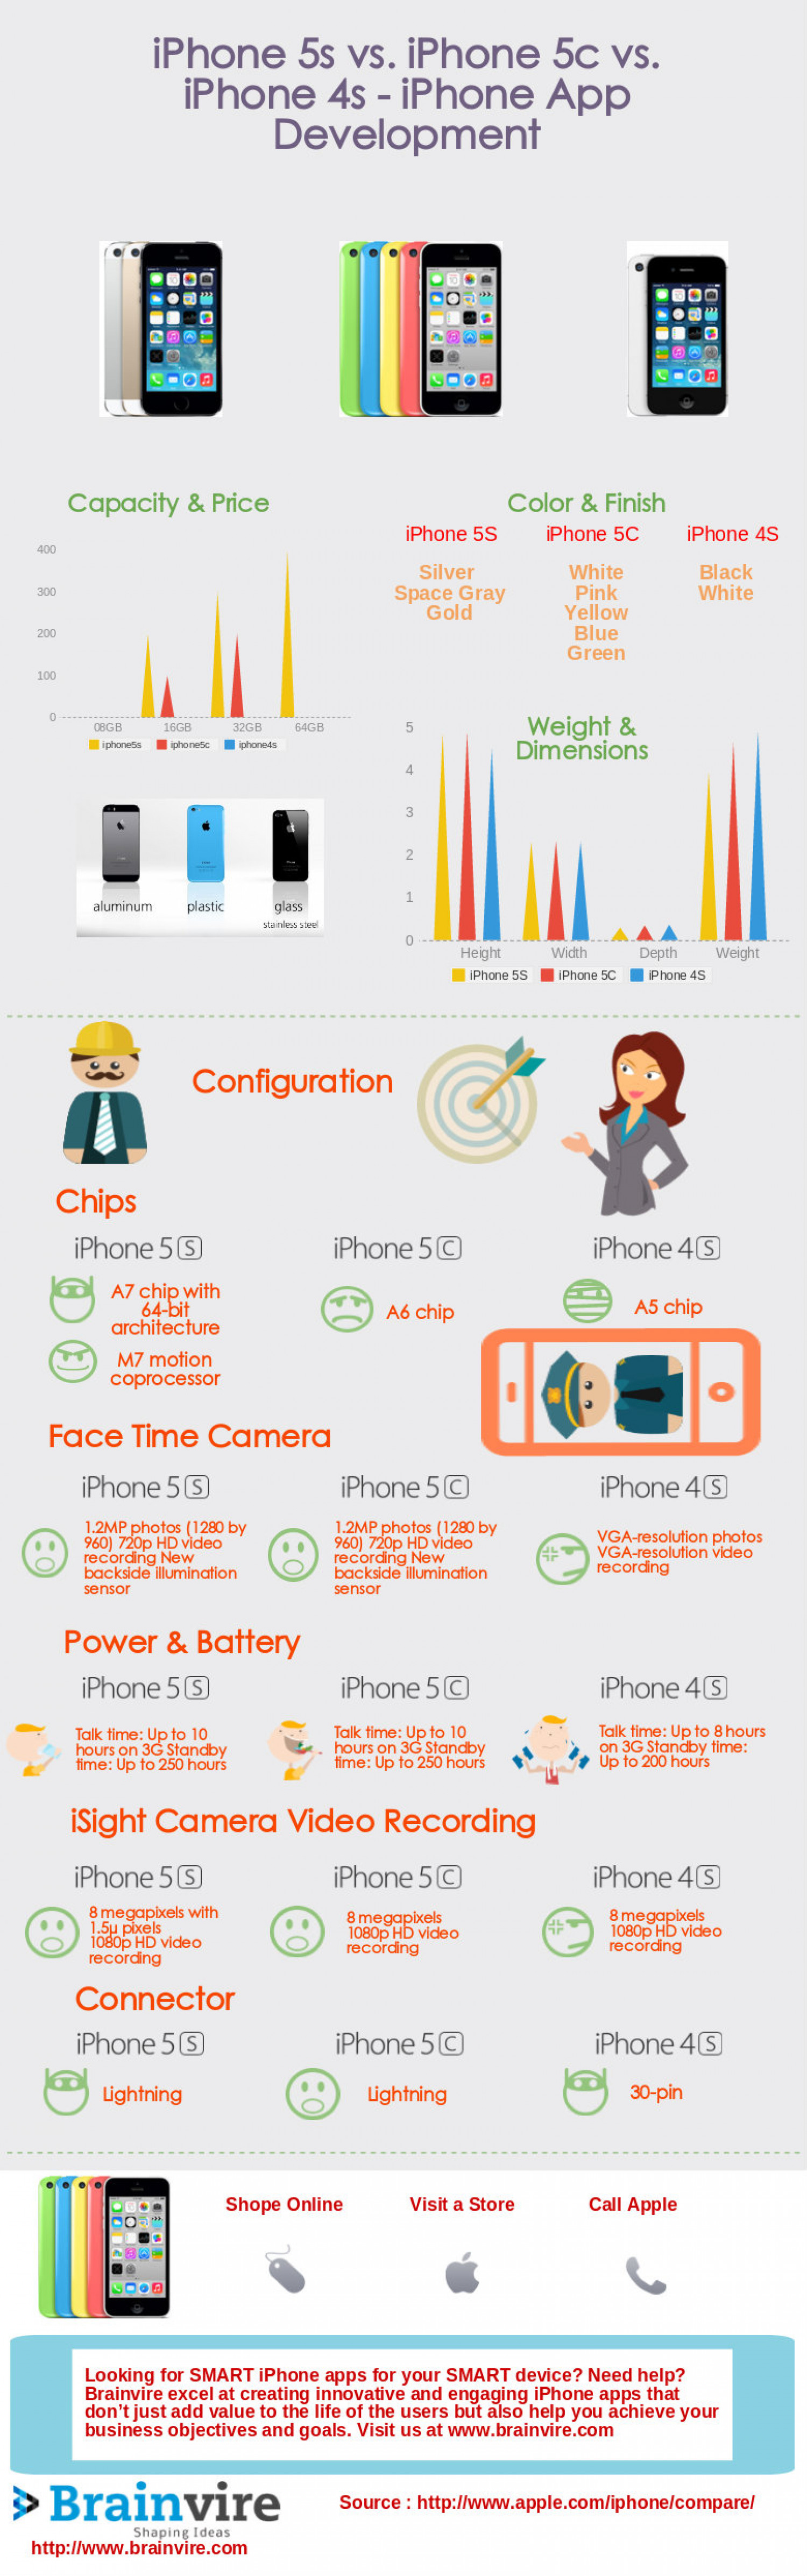 iPhone 5s vs. iPhone 5c vs. iPhone 4s - iPhone App Development Infographic